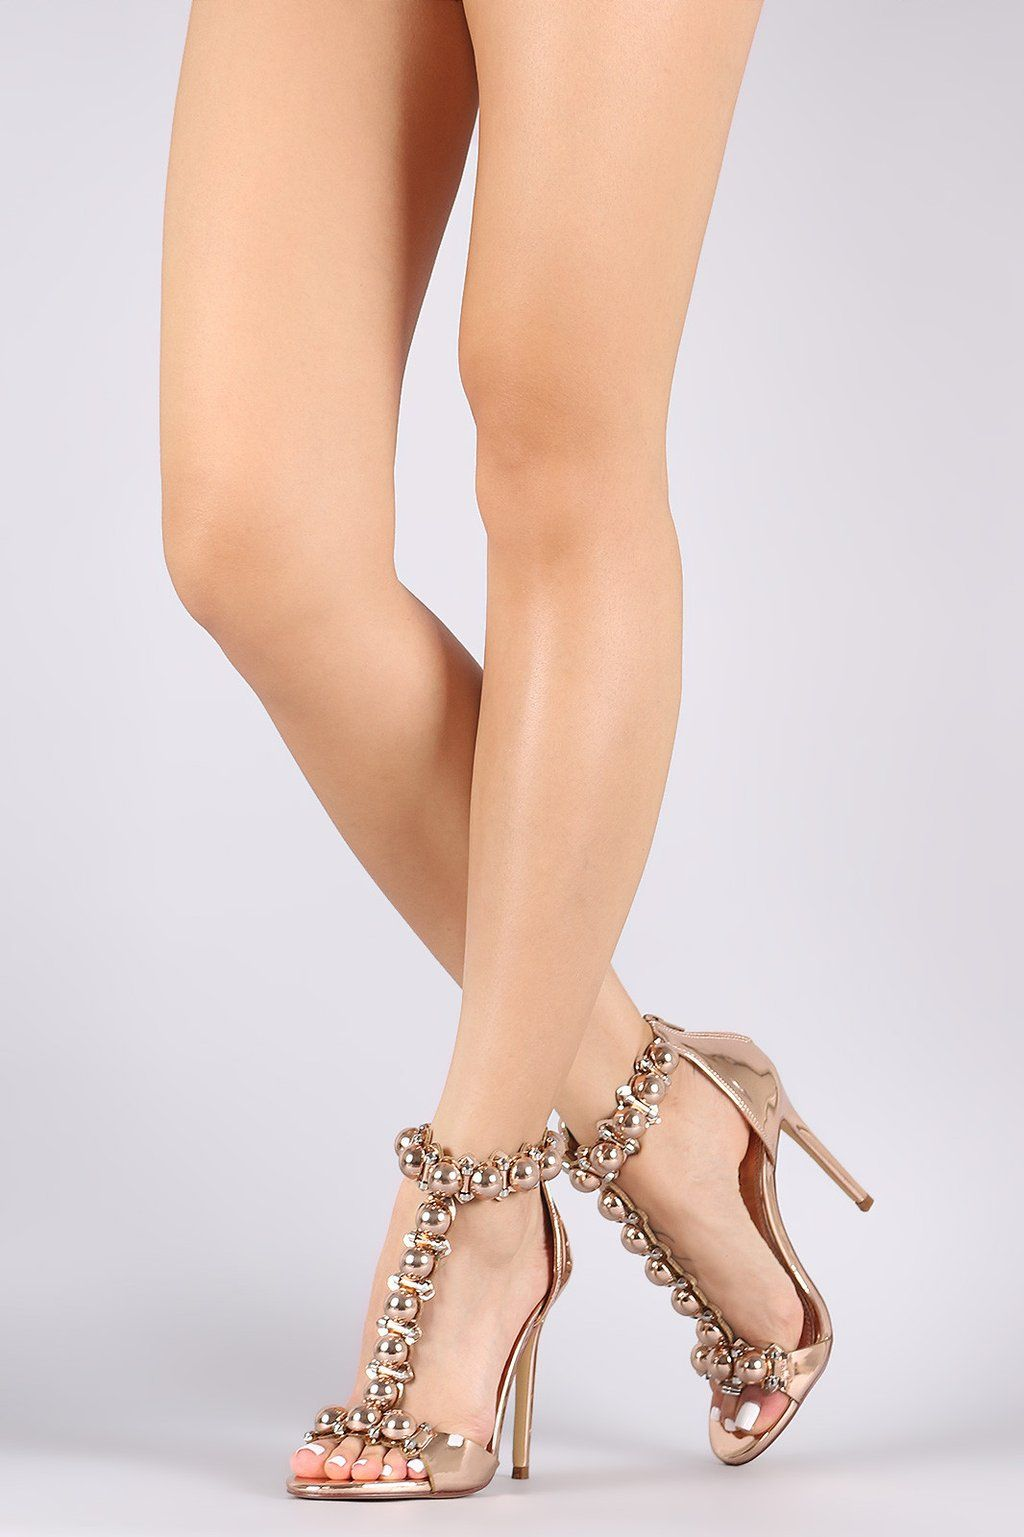 3719d7791a Liliana Patent Bullet And Button T-Strap Stiletto Heel - Avenue of Angels